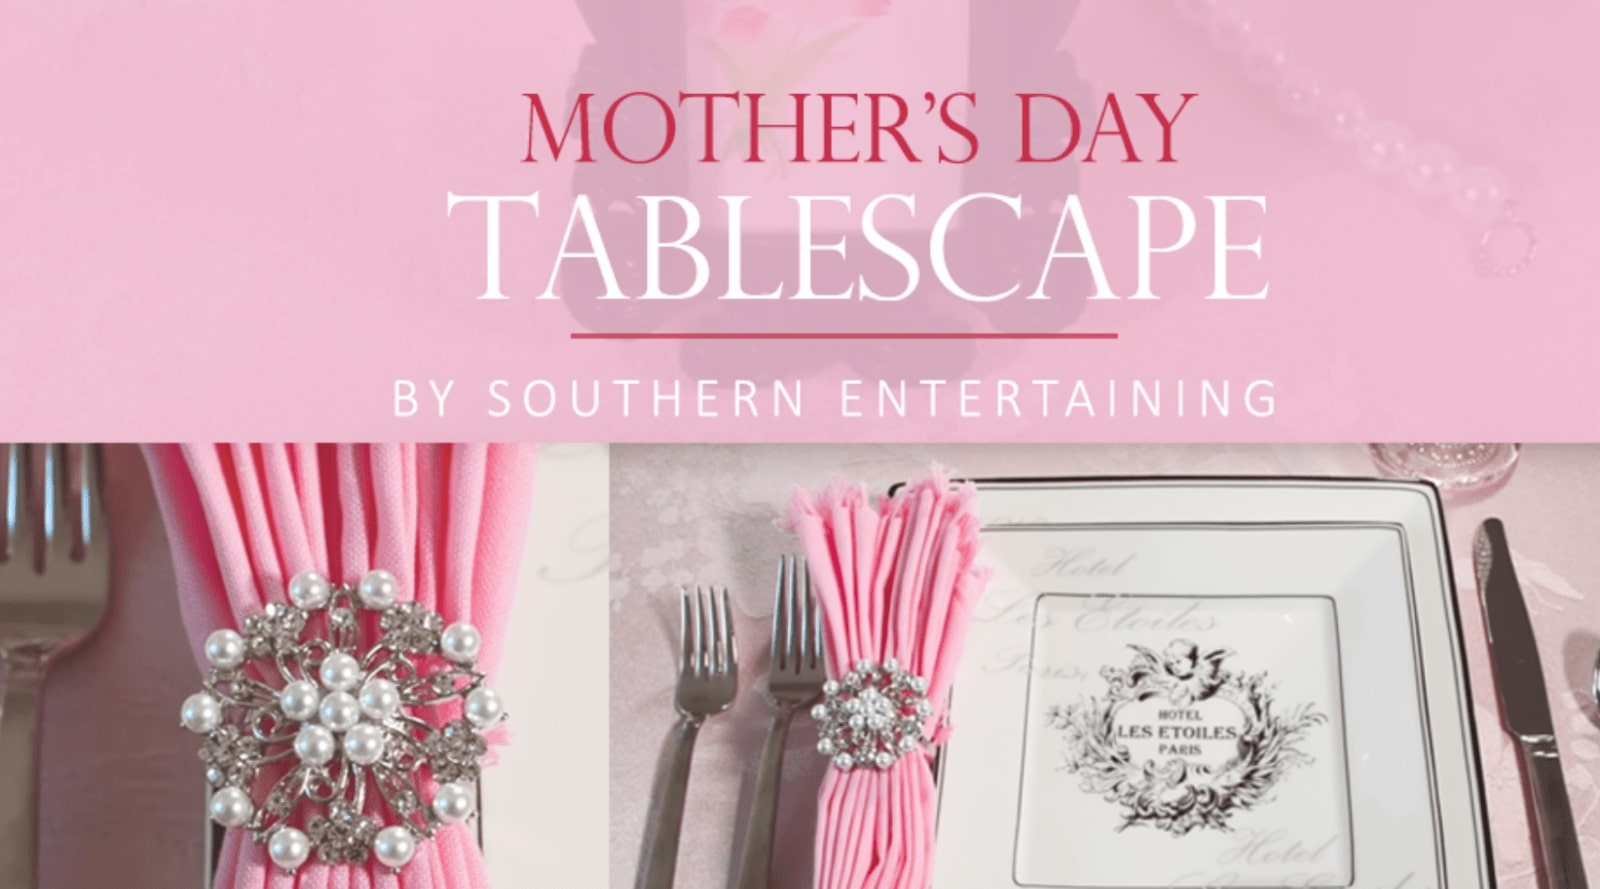 Mother's Day Tablescape by Southern Entertaining